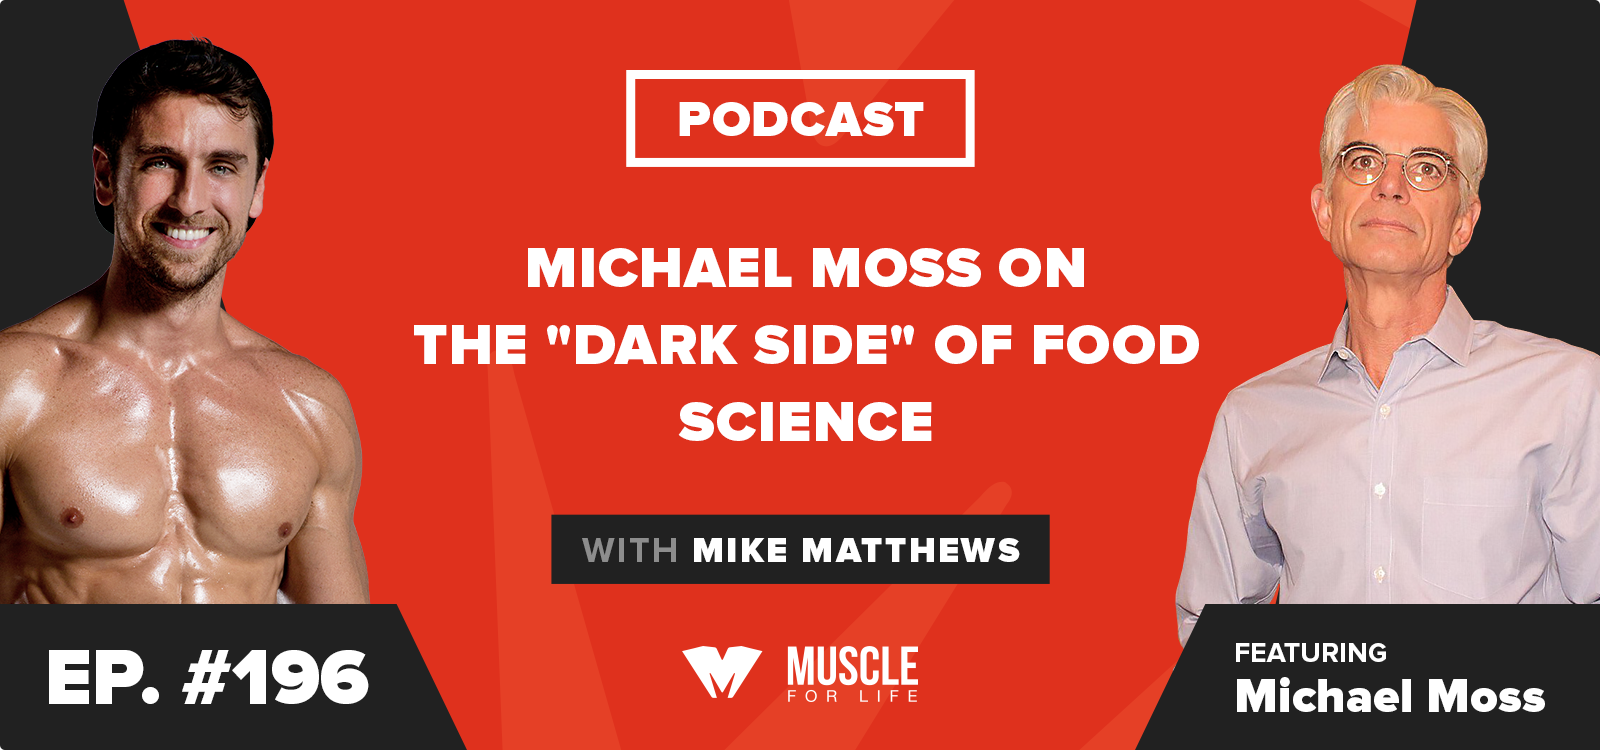 "Michael Moss on the ""Dark Side"" of Food Science"